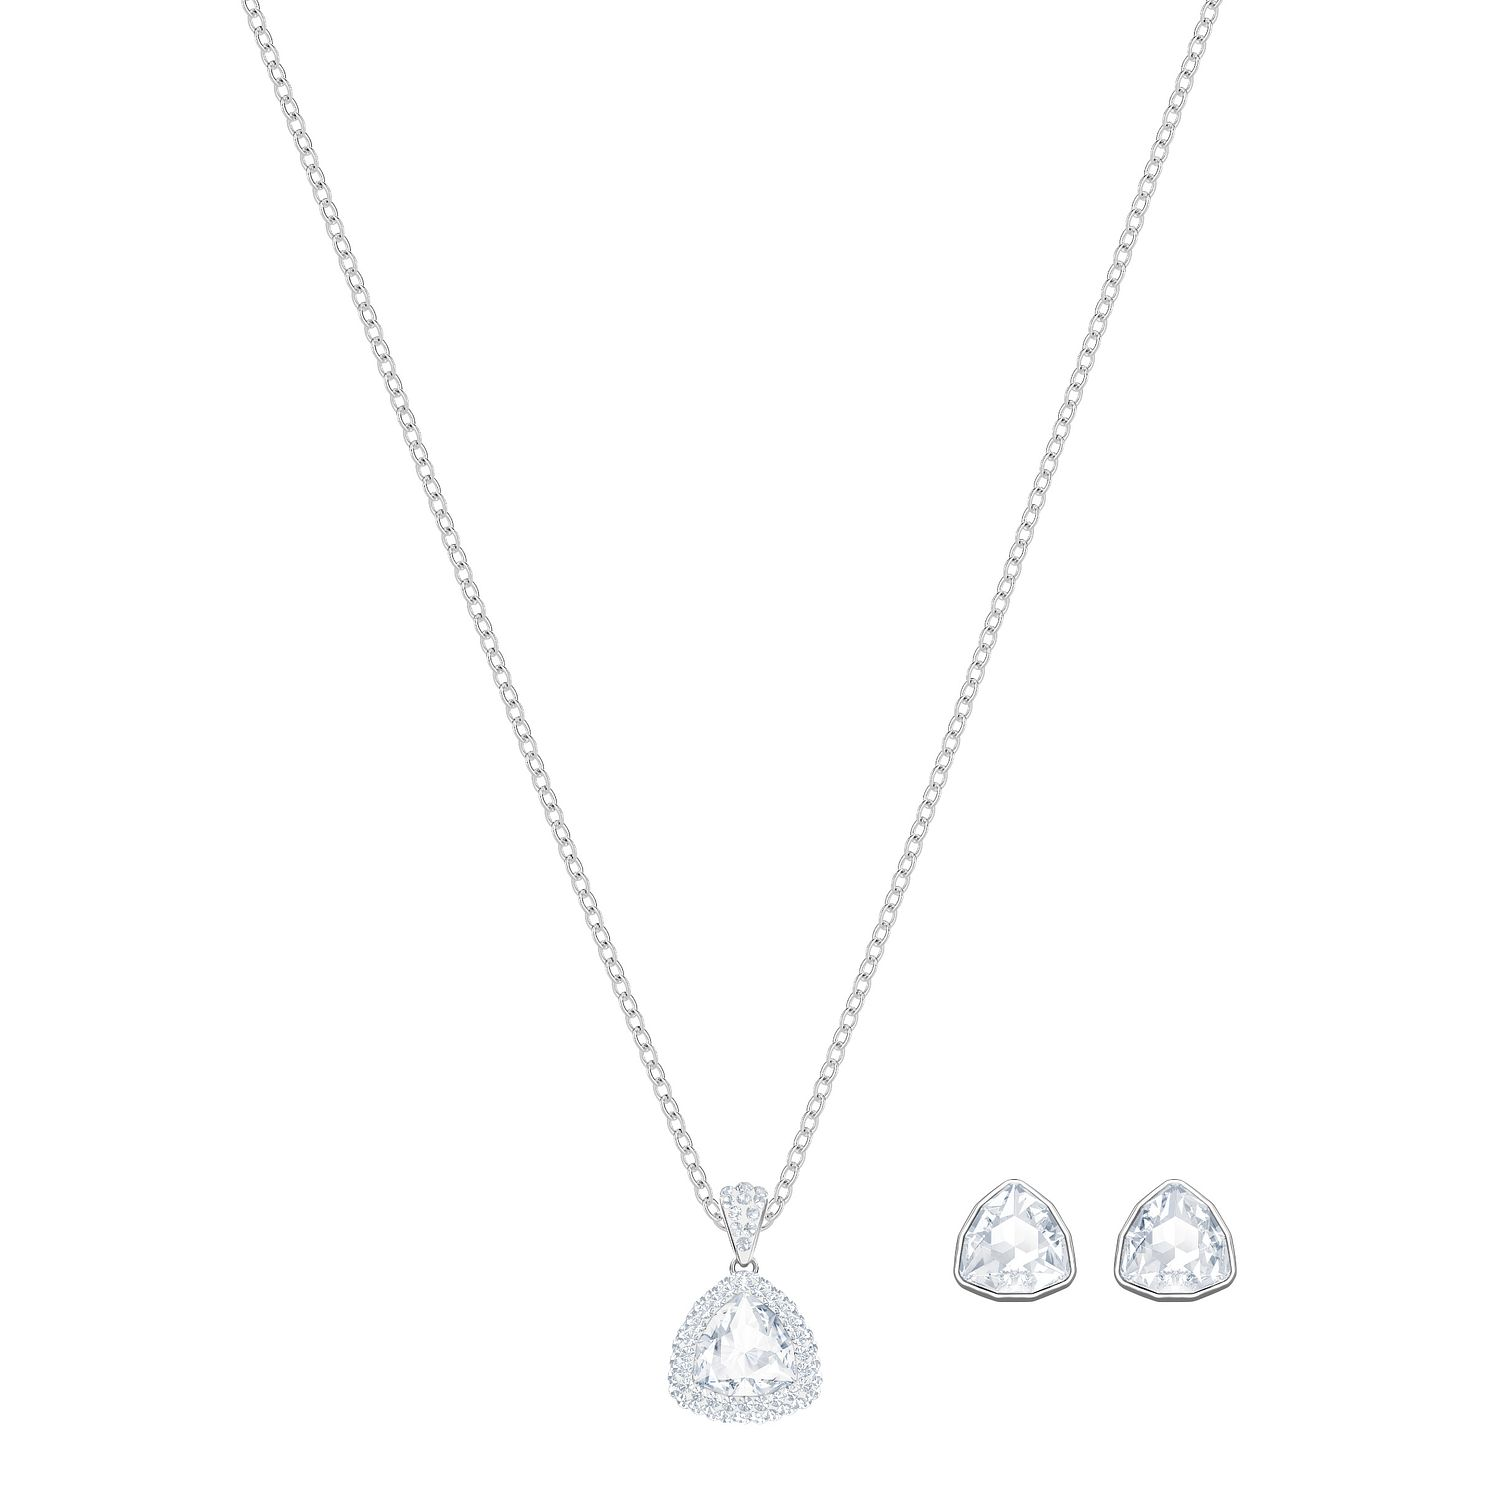 Swarvoski Ladies' Rhodium Begin Necklace & Earring Set - Product number 9808132